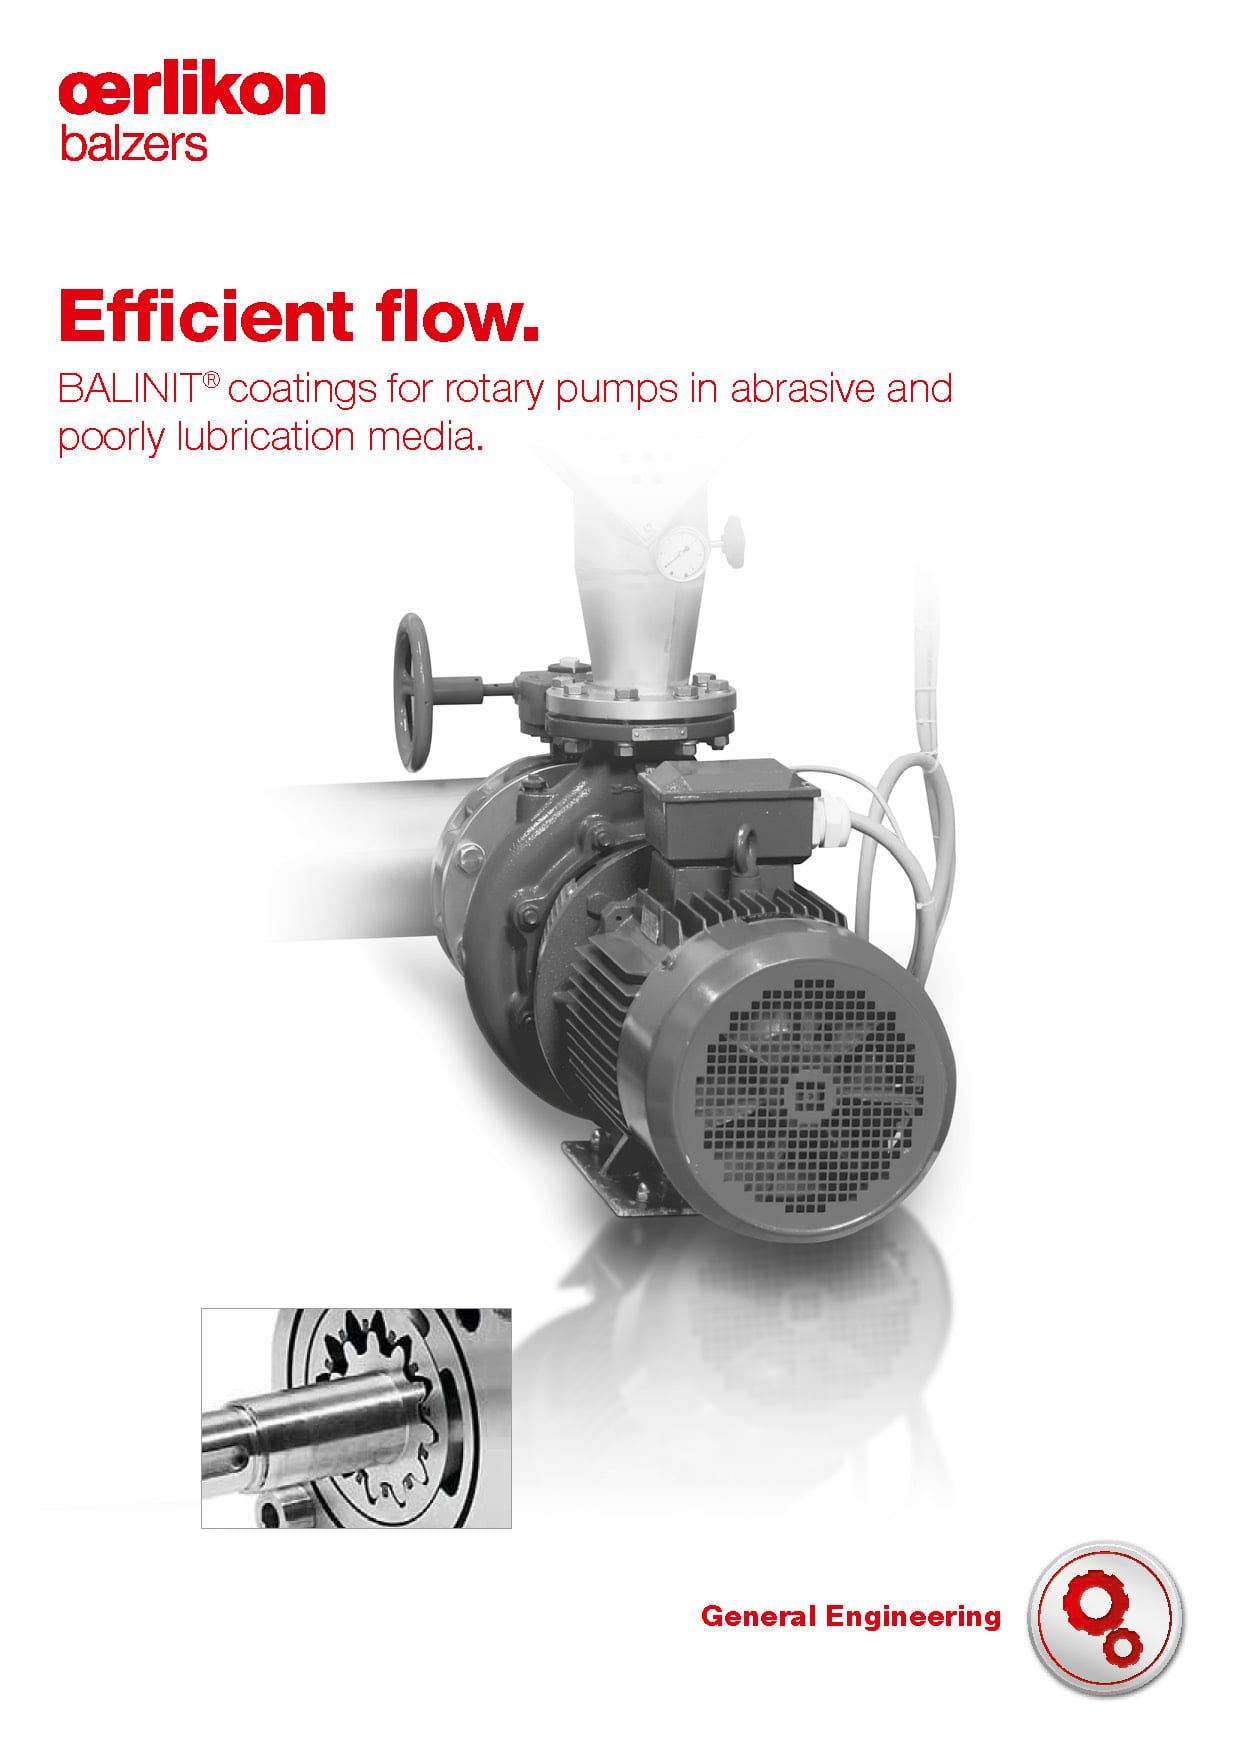 Rotary Pumps - Efficient flow